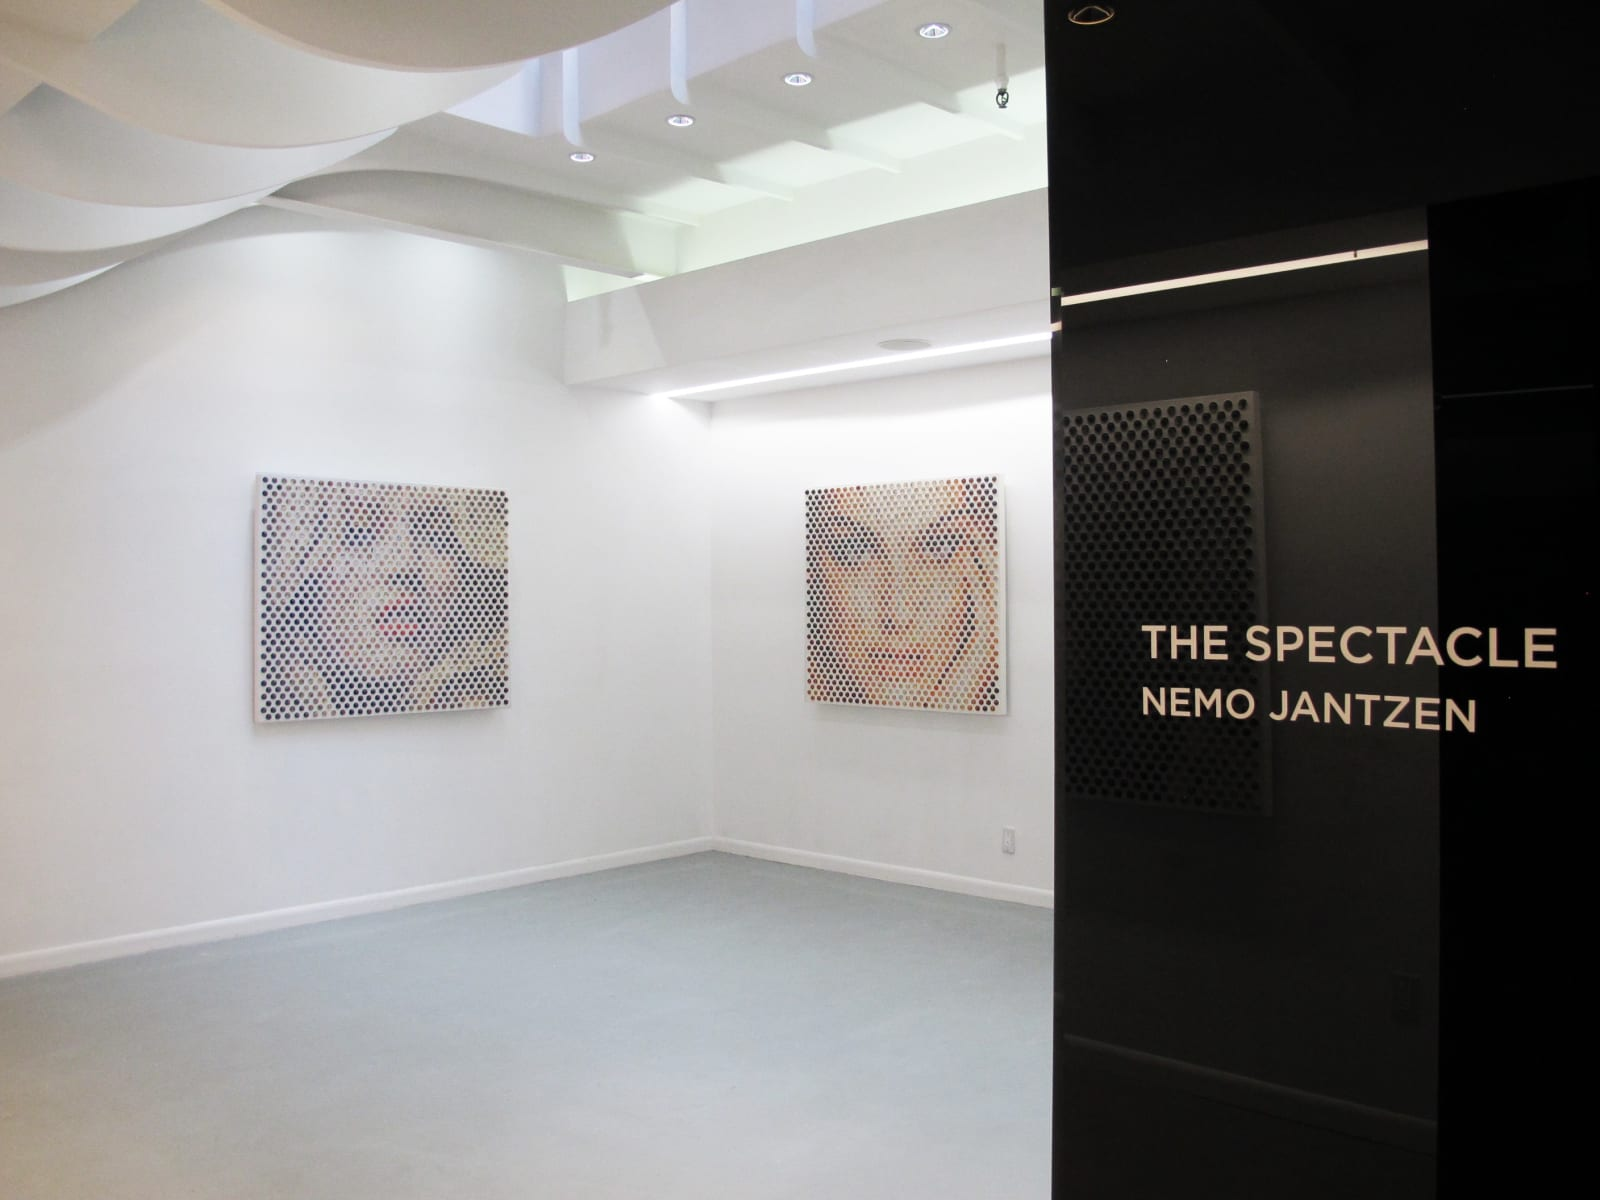 Nemo Jantzen - The Spectacle